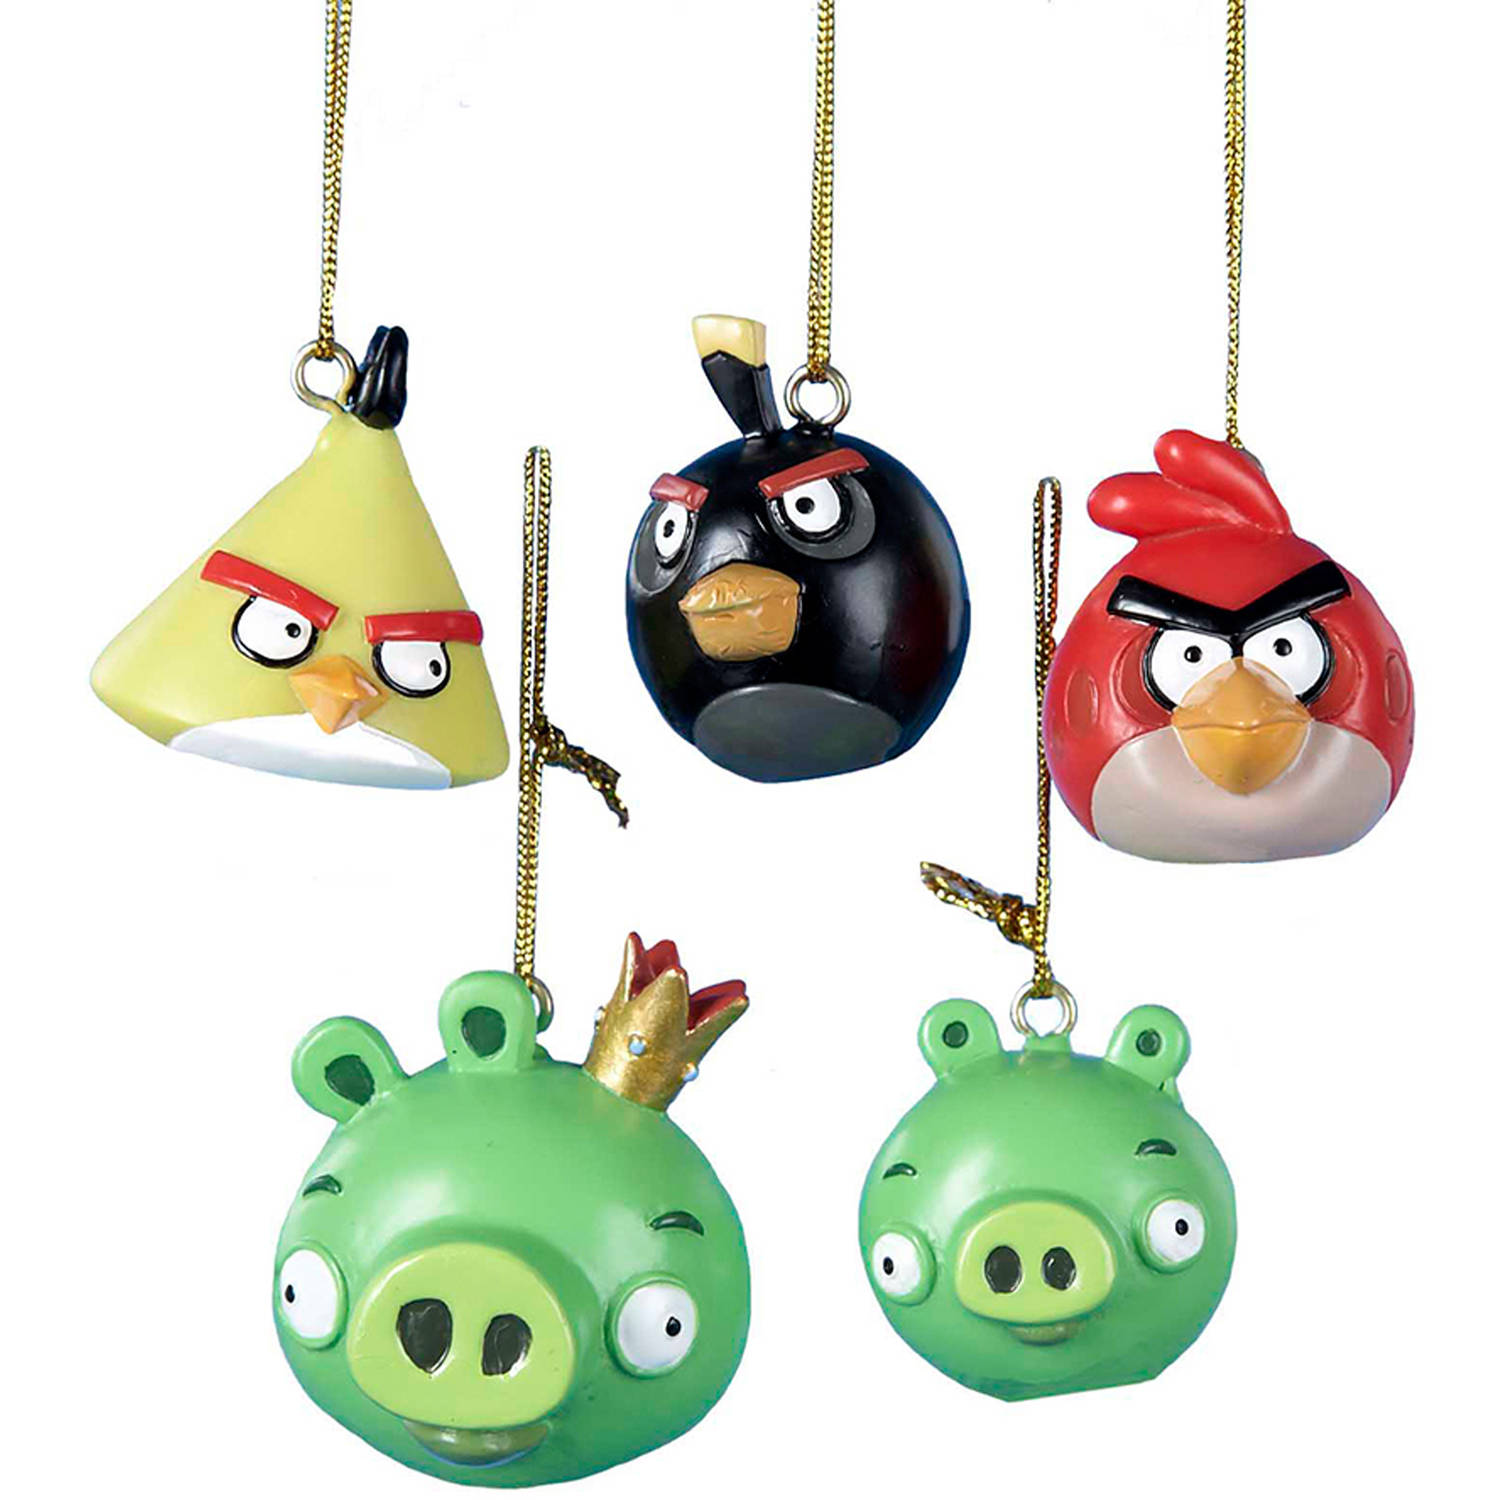 "Kurt Adler 1.75"" Resin Angry Birds Mini Ornaments, 5-Piece Set"